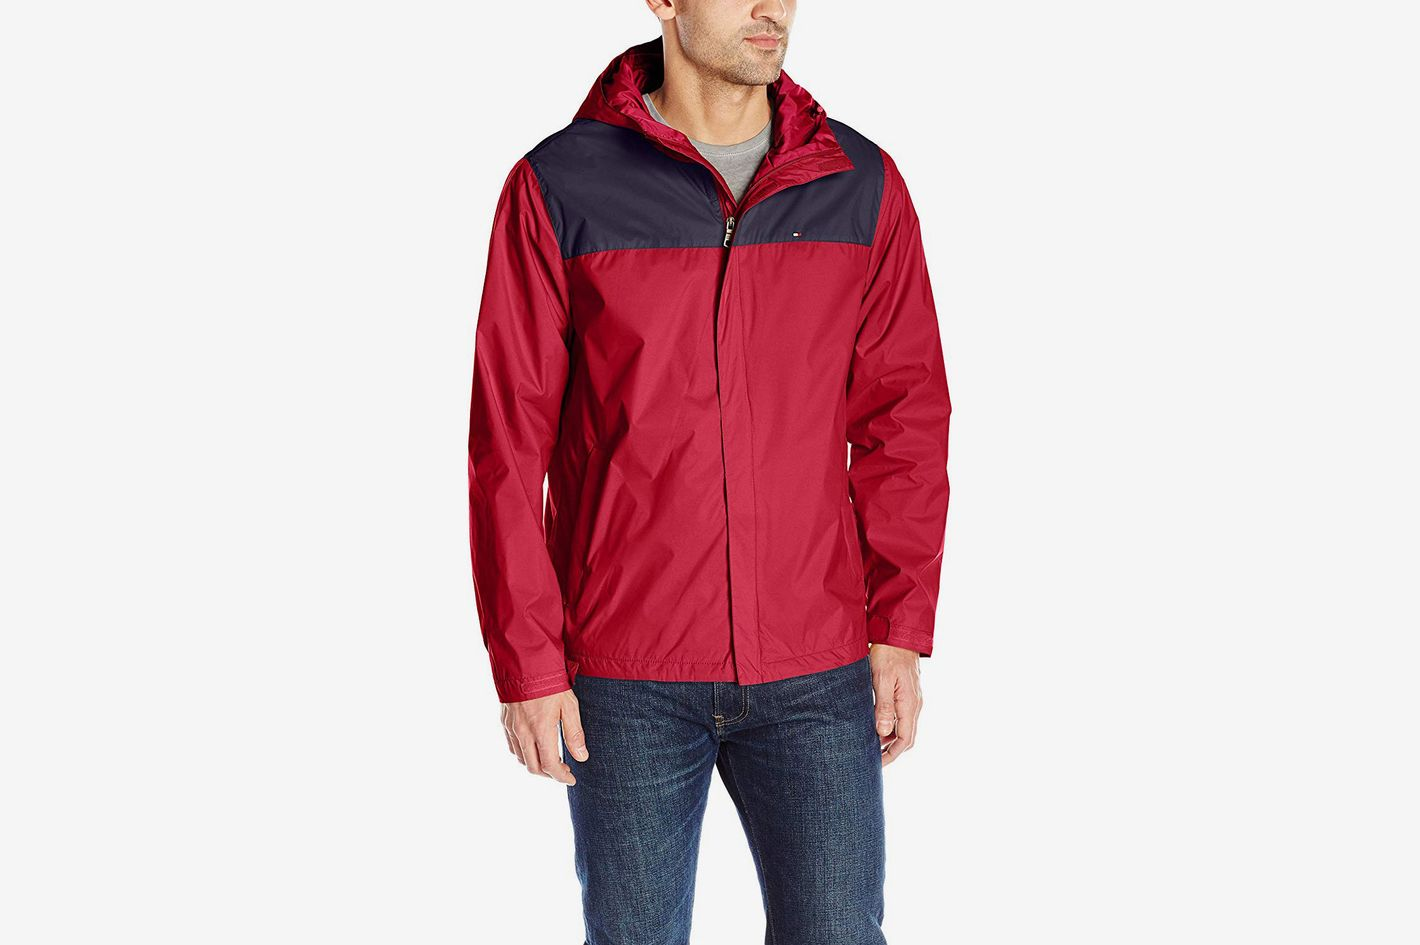 648a8beba03e Tommy Hilfiger Men's Waterproof Breathable Hooded Jacket